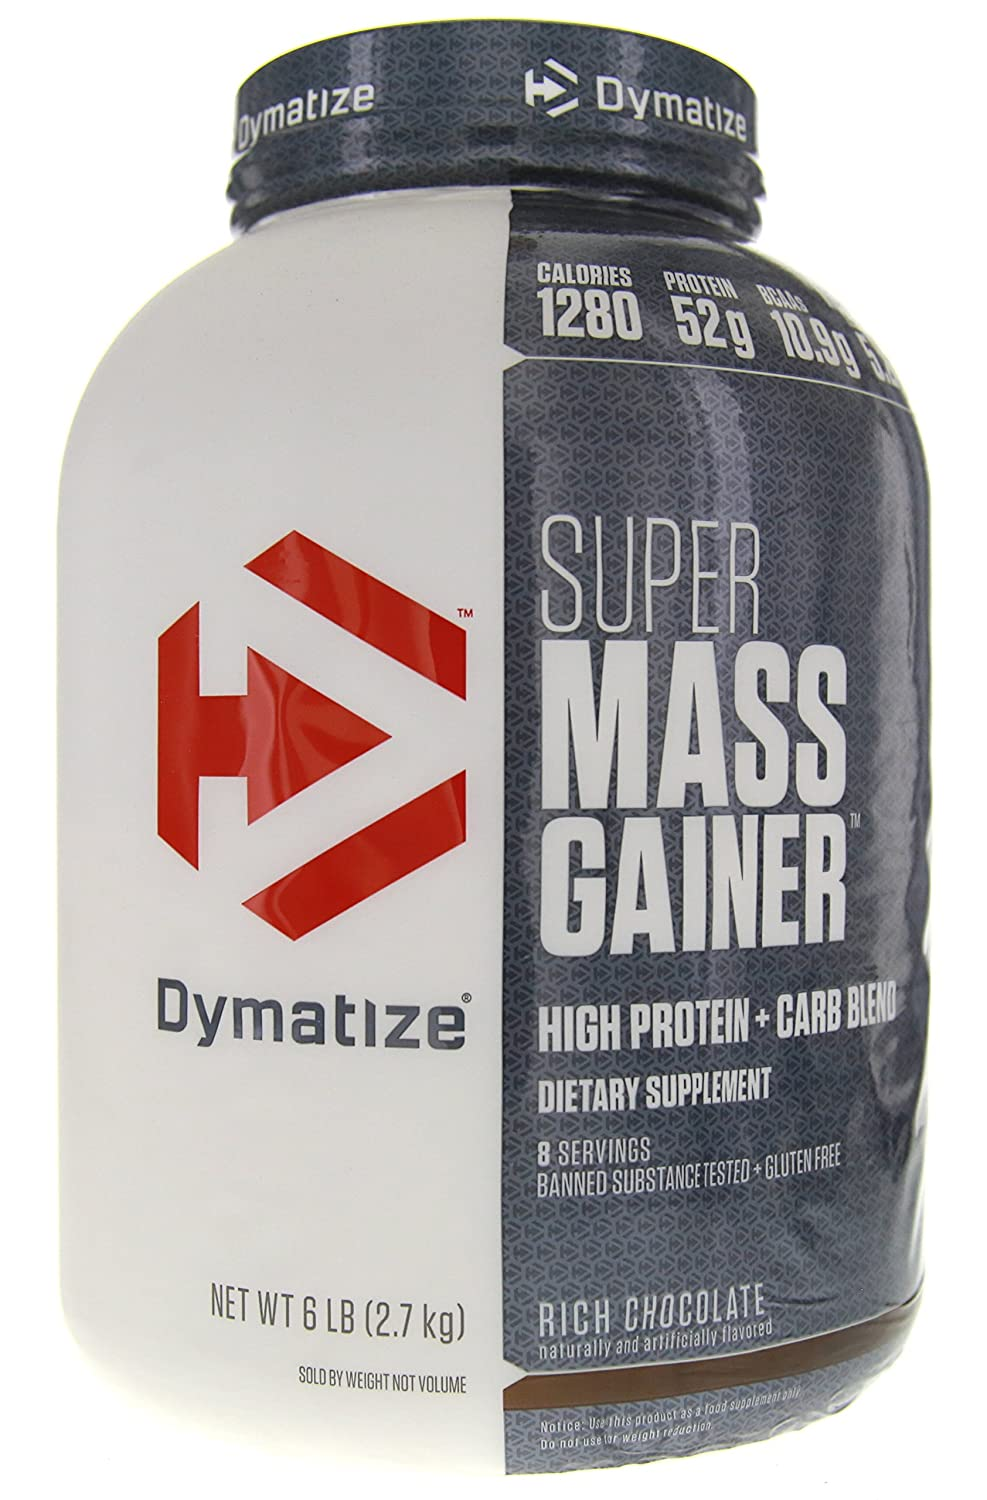 Dymatize Super Mass Gainer Protein Supplement with Digestive ...